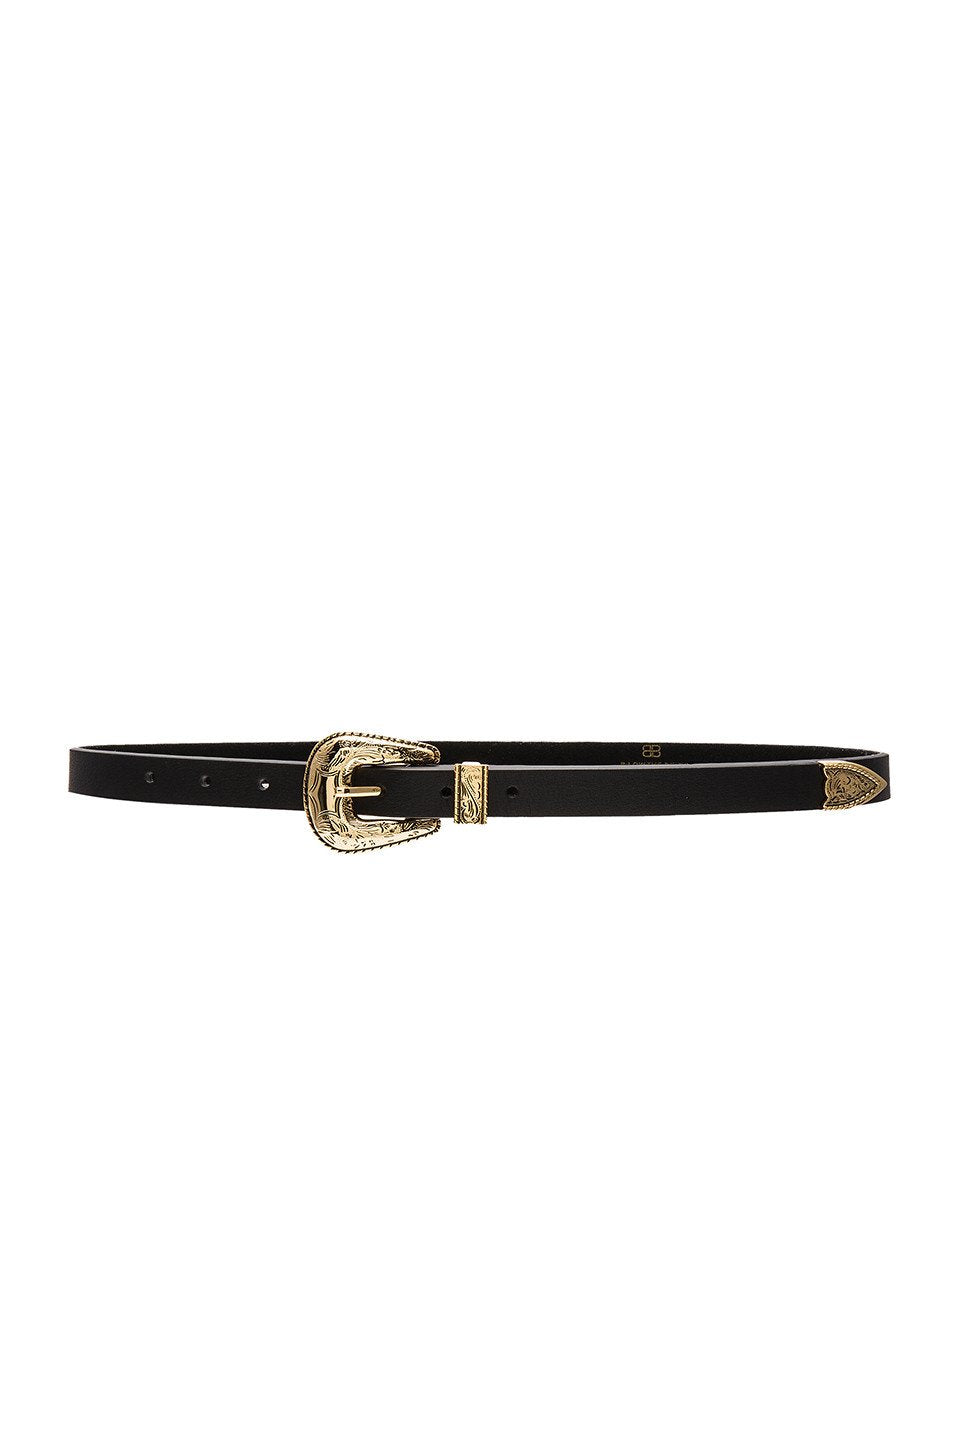 Baby Frank Belt - Kustom Label